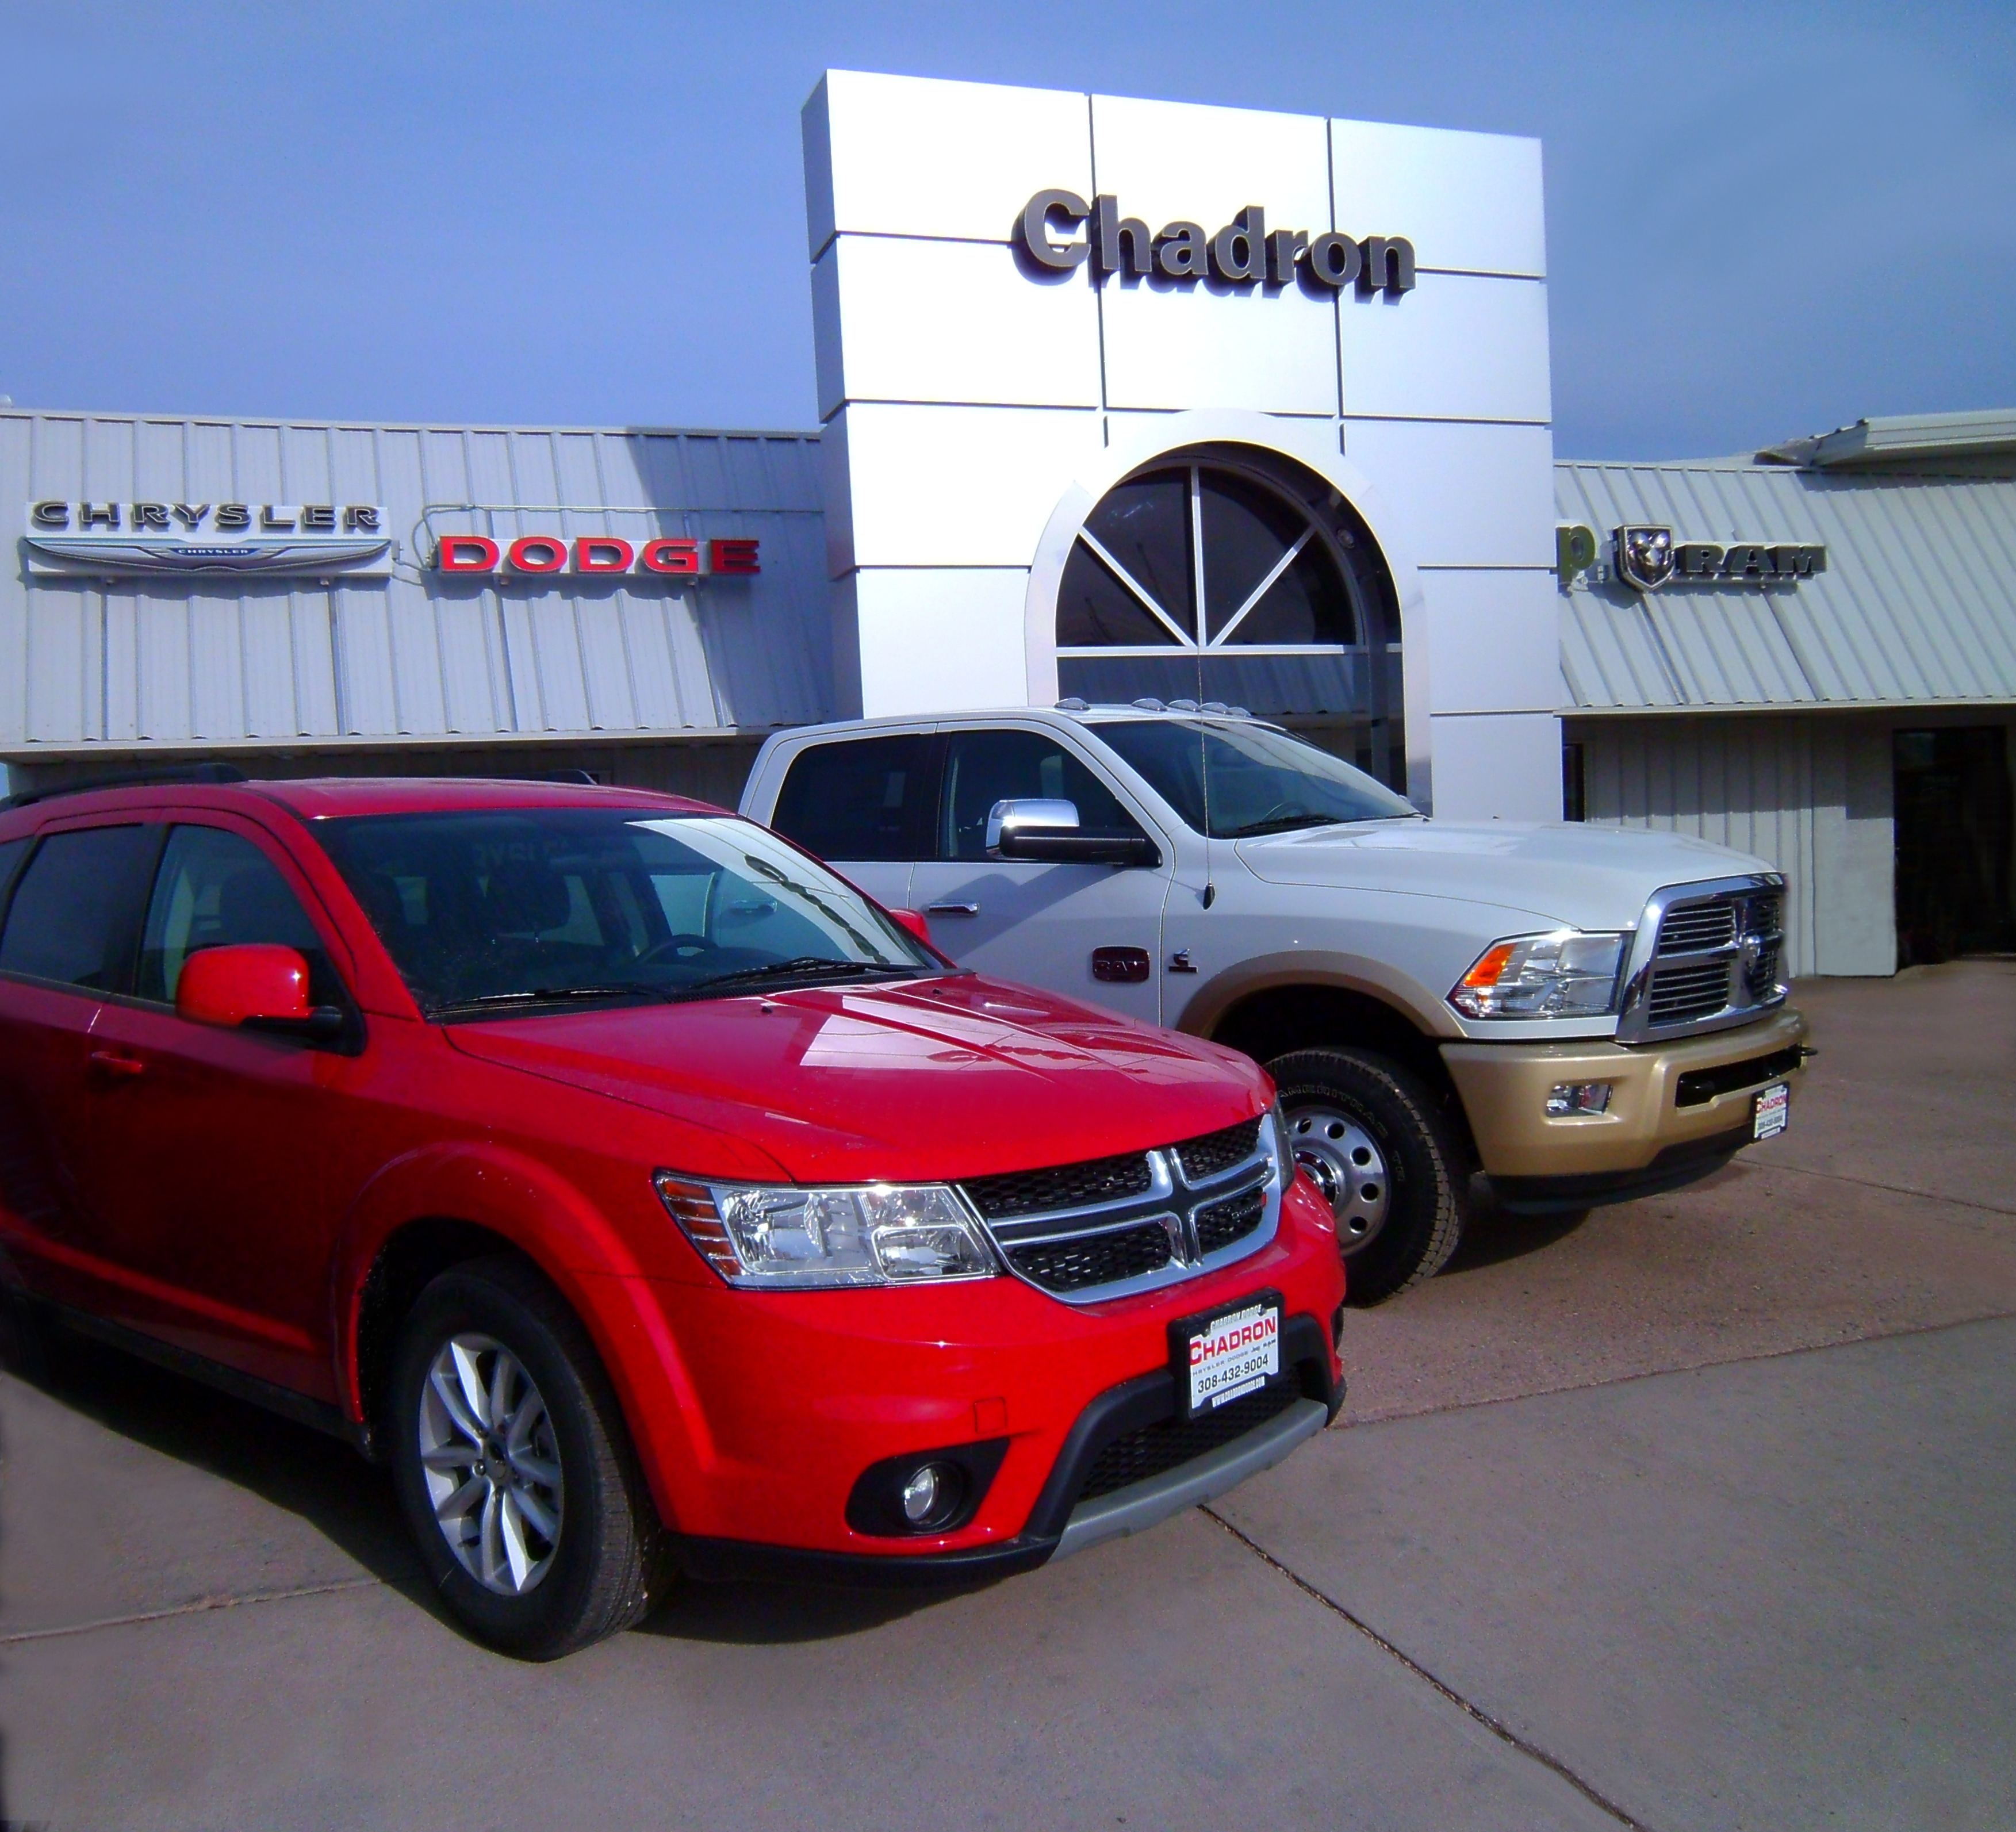 About Chadron Chrysler Dodge Jeep RAM